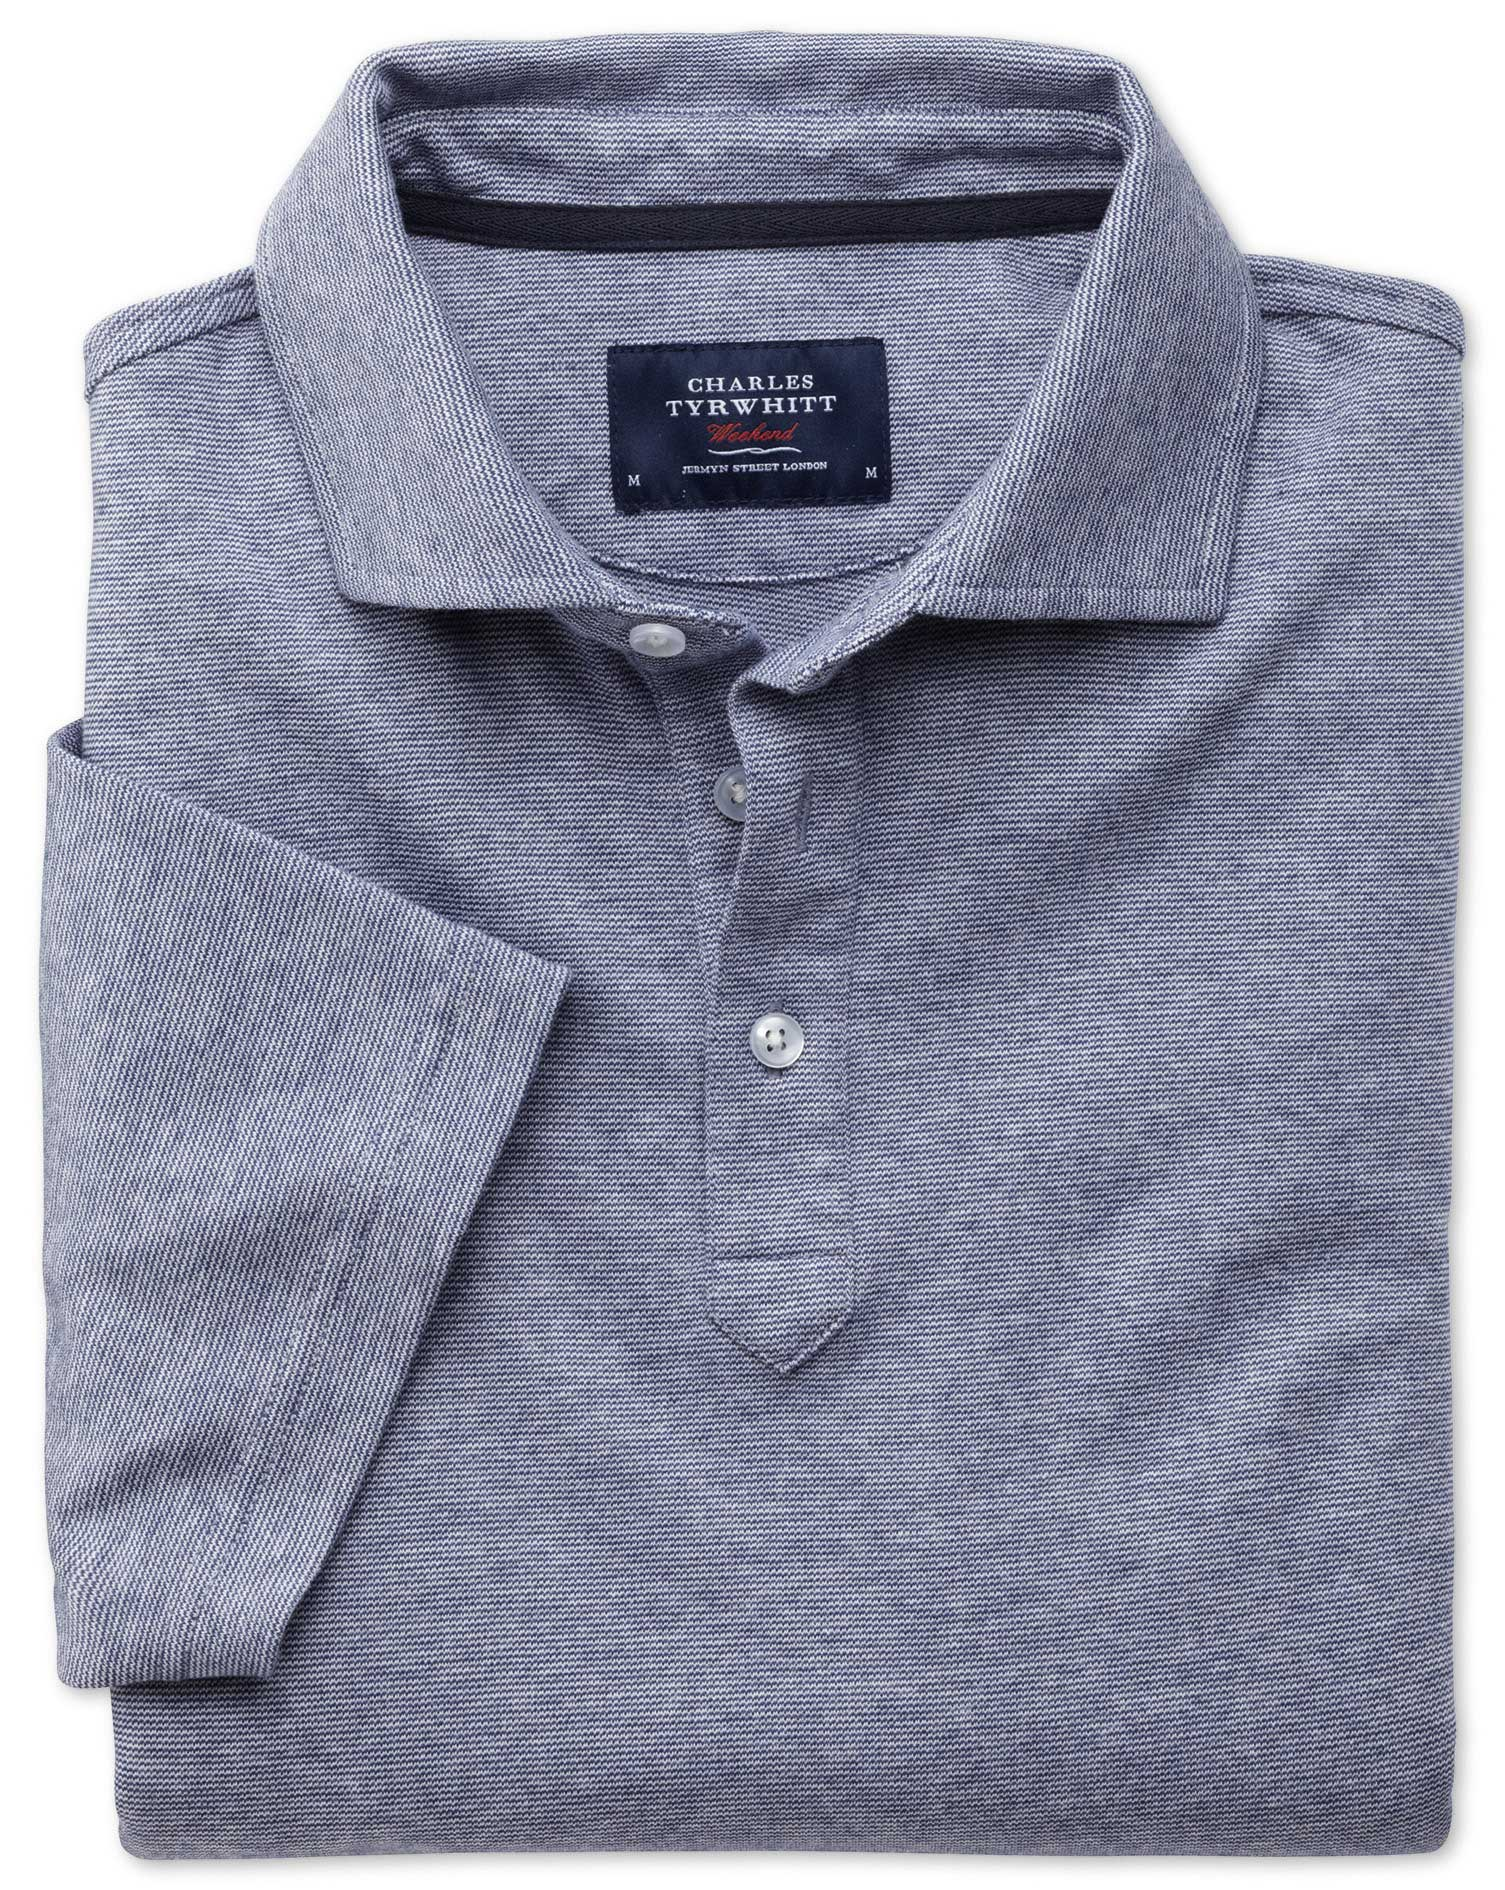 53d9a6aeb8f Charles Tyrwhitt Polo Shirts Review – EDGE Engineering and ...